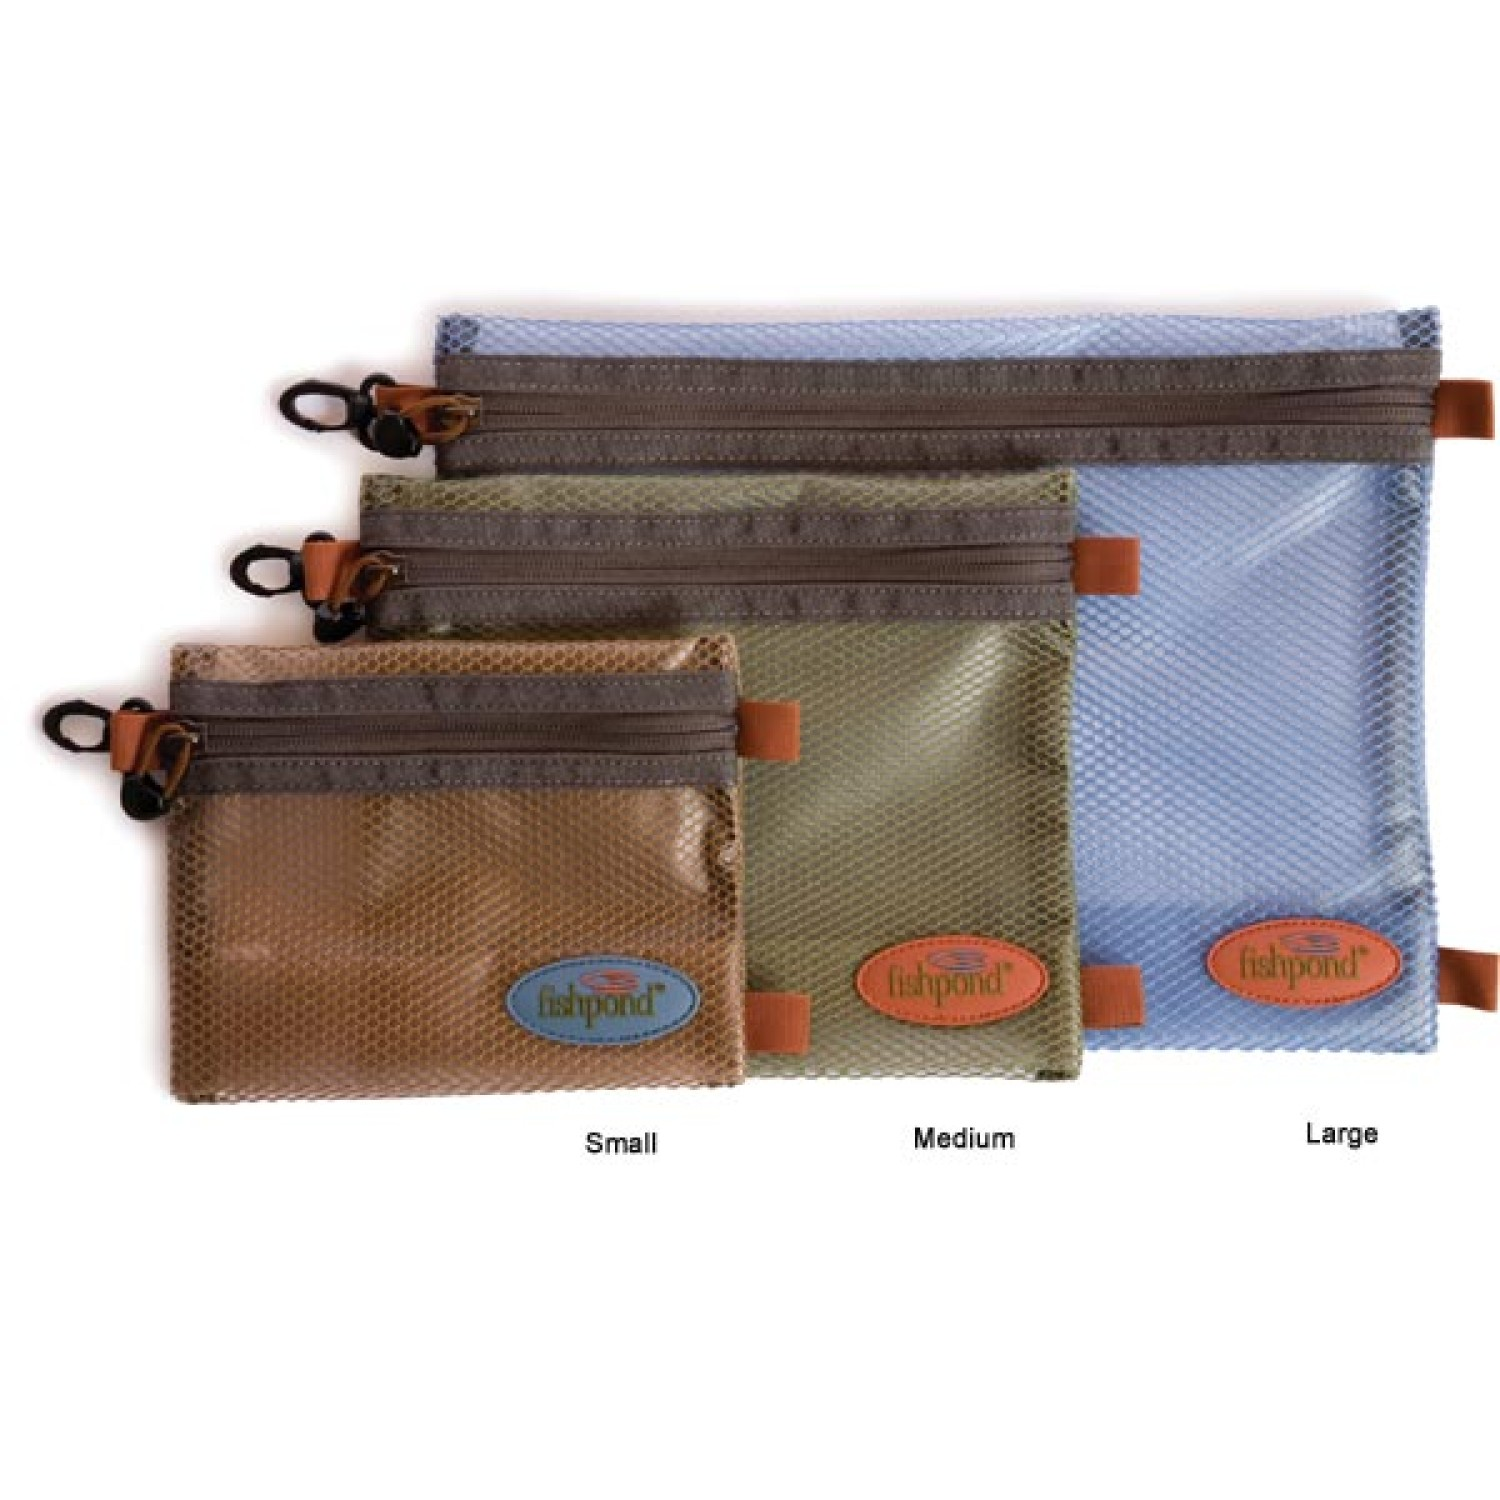 FISHPOND - Eagle's Nest Travel Pouch